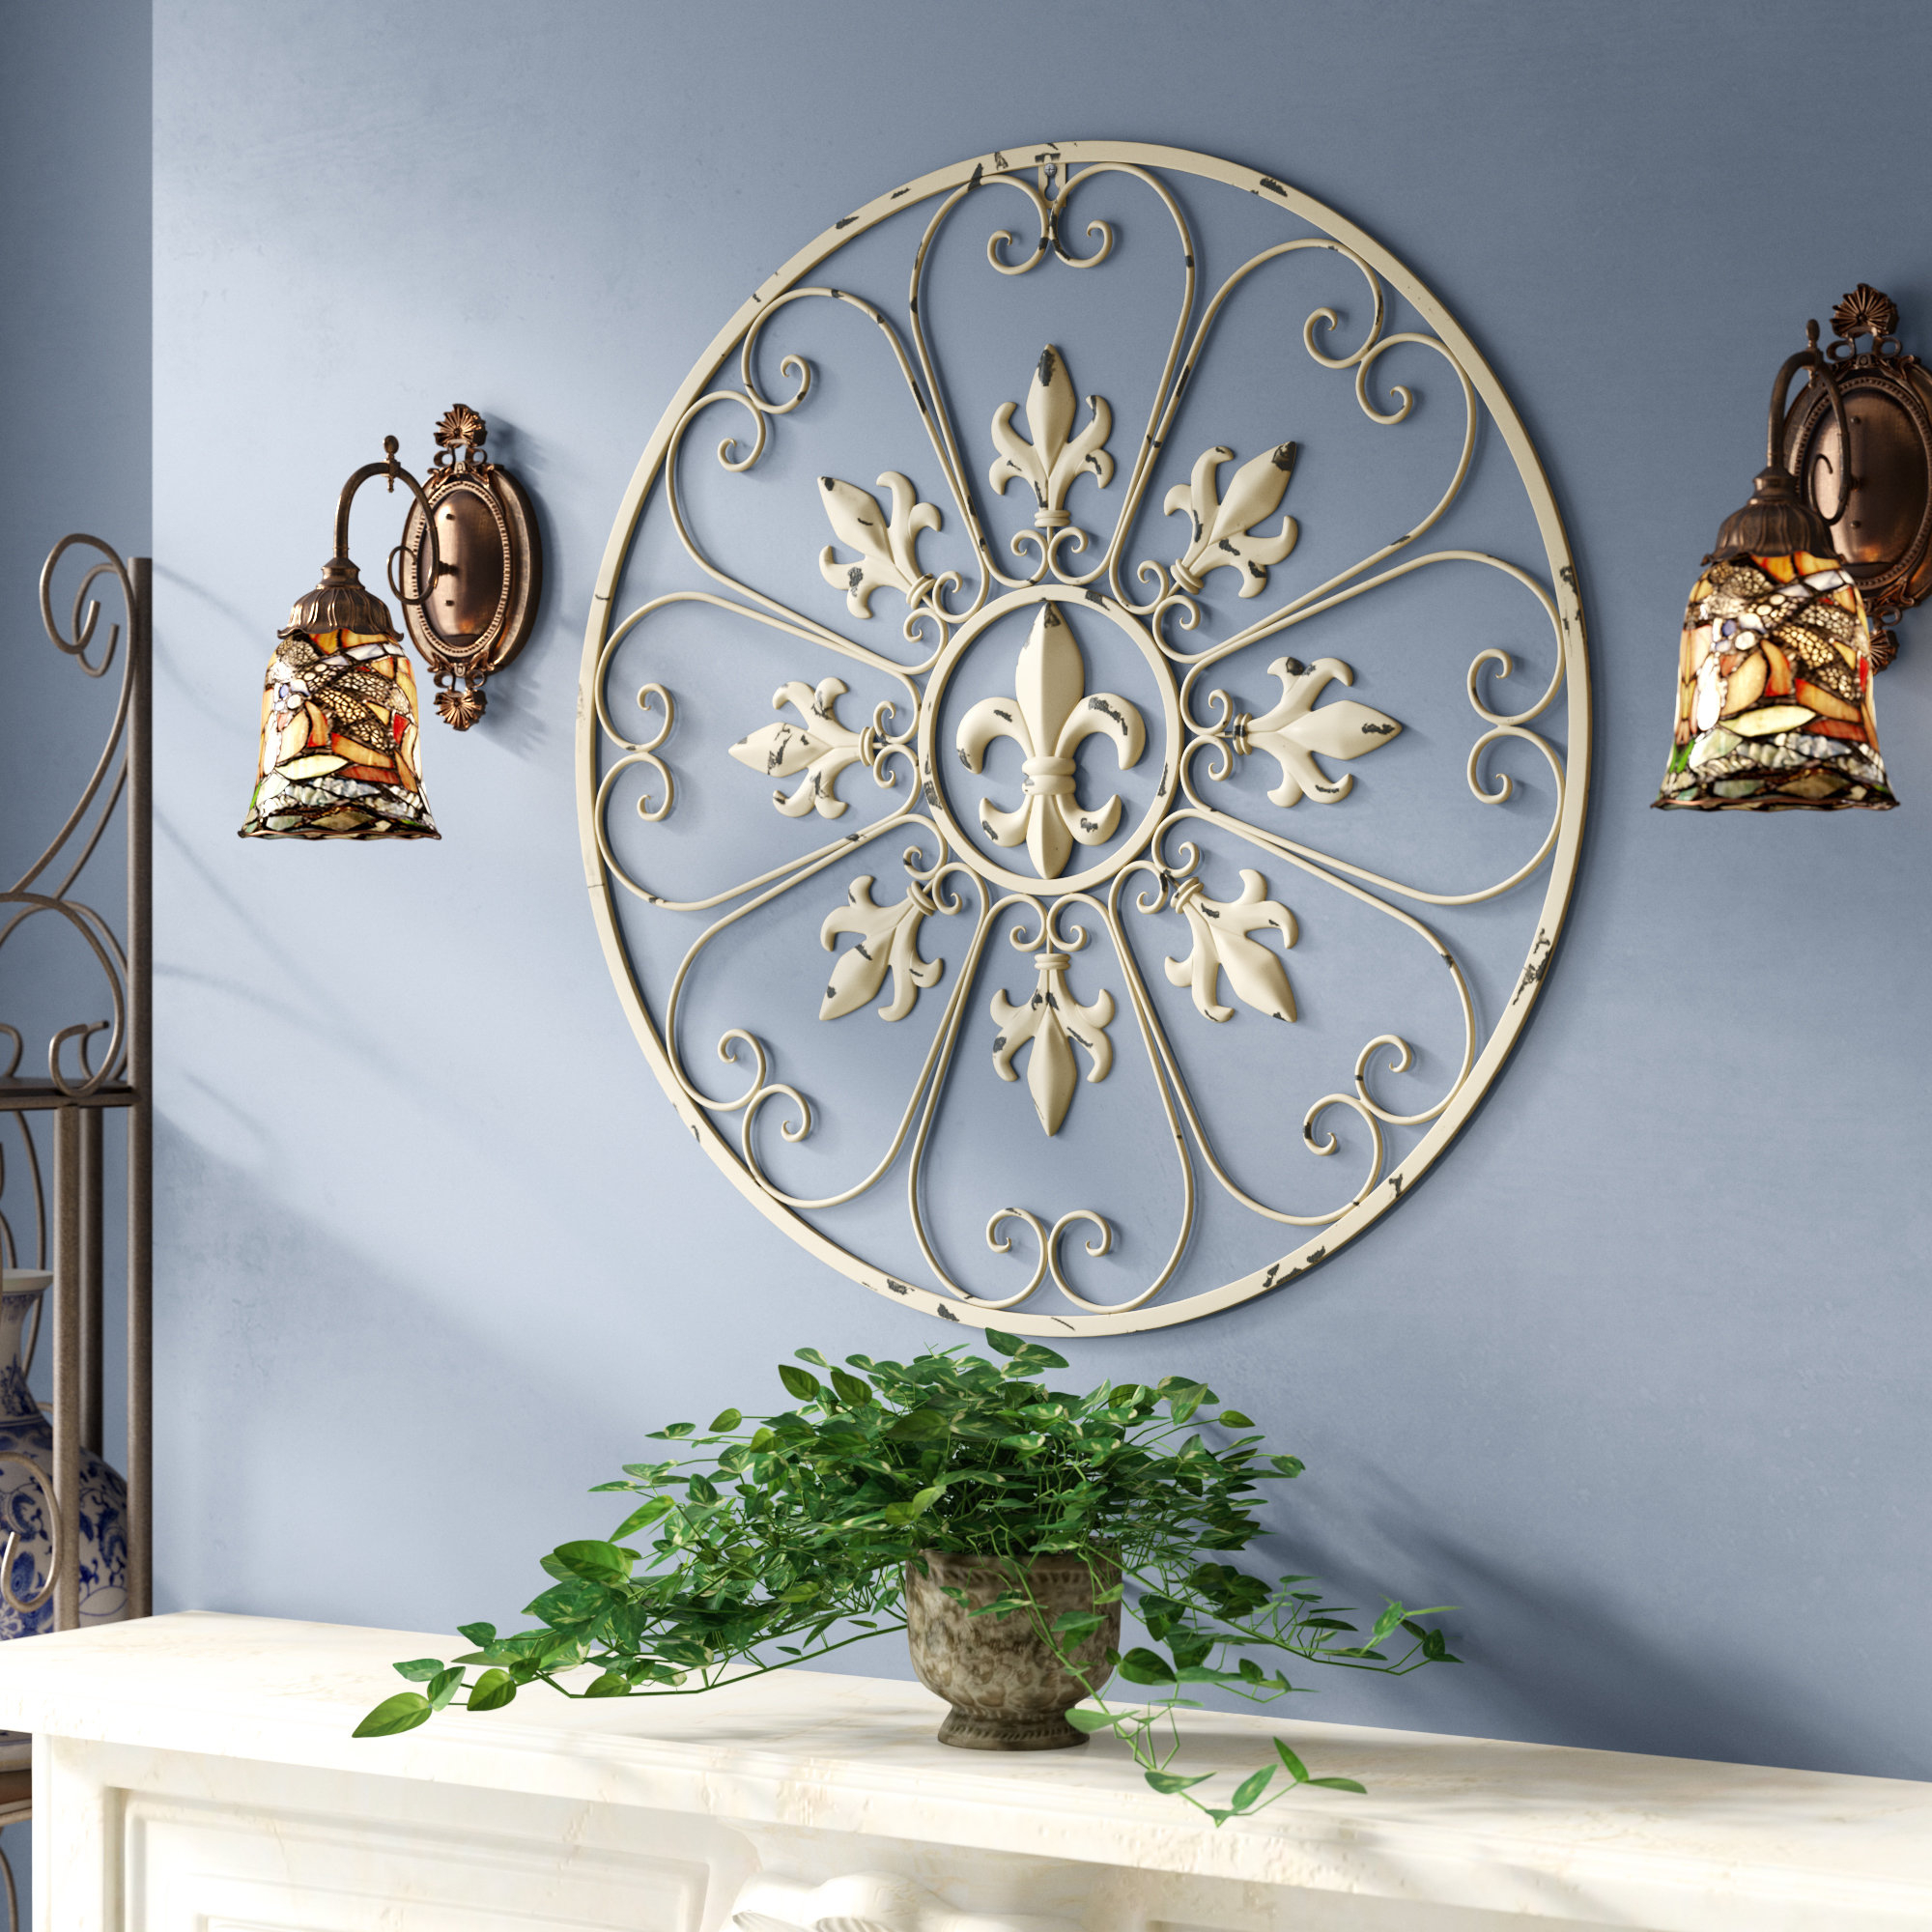 Over The Door Metal Wall Decor | Wayfair Pertaining To Alvis Traditional Metal Wall Decor (View 14 of 30)